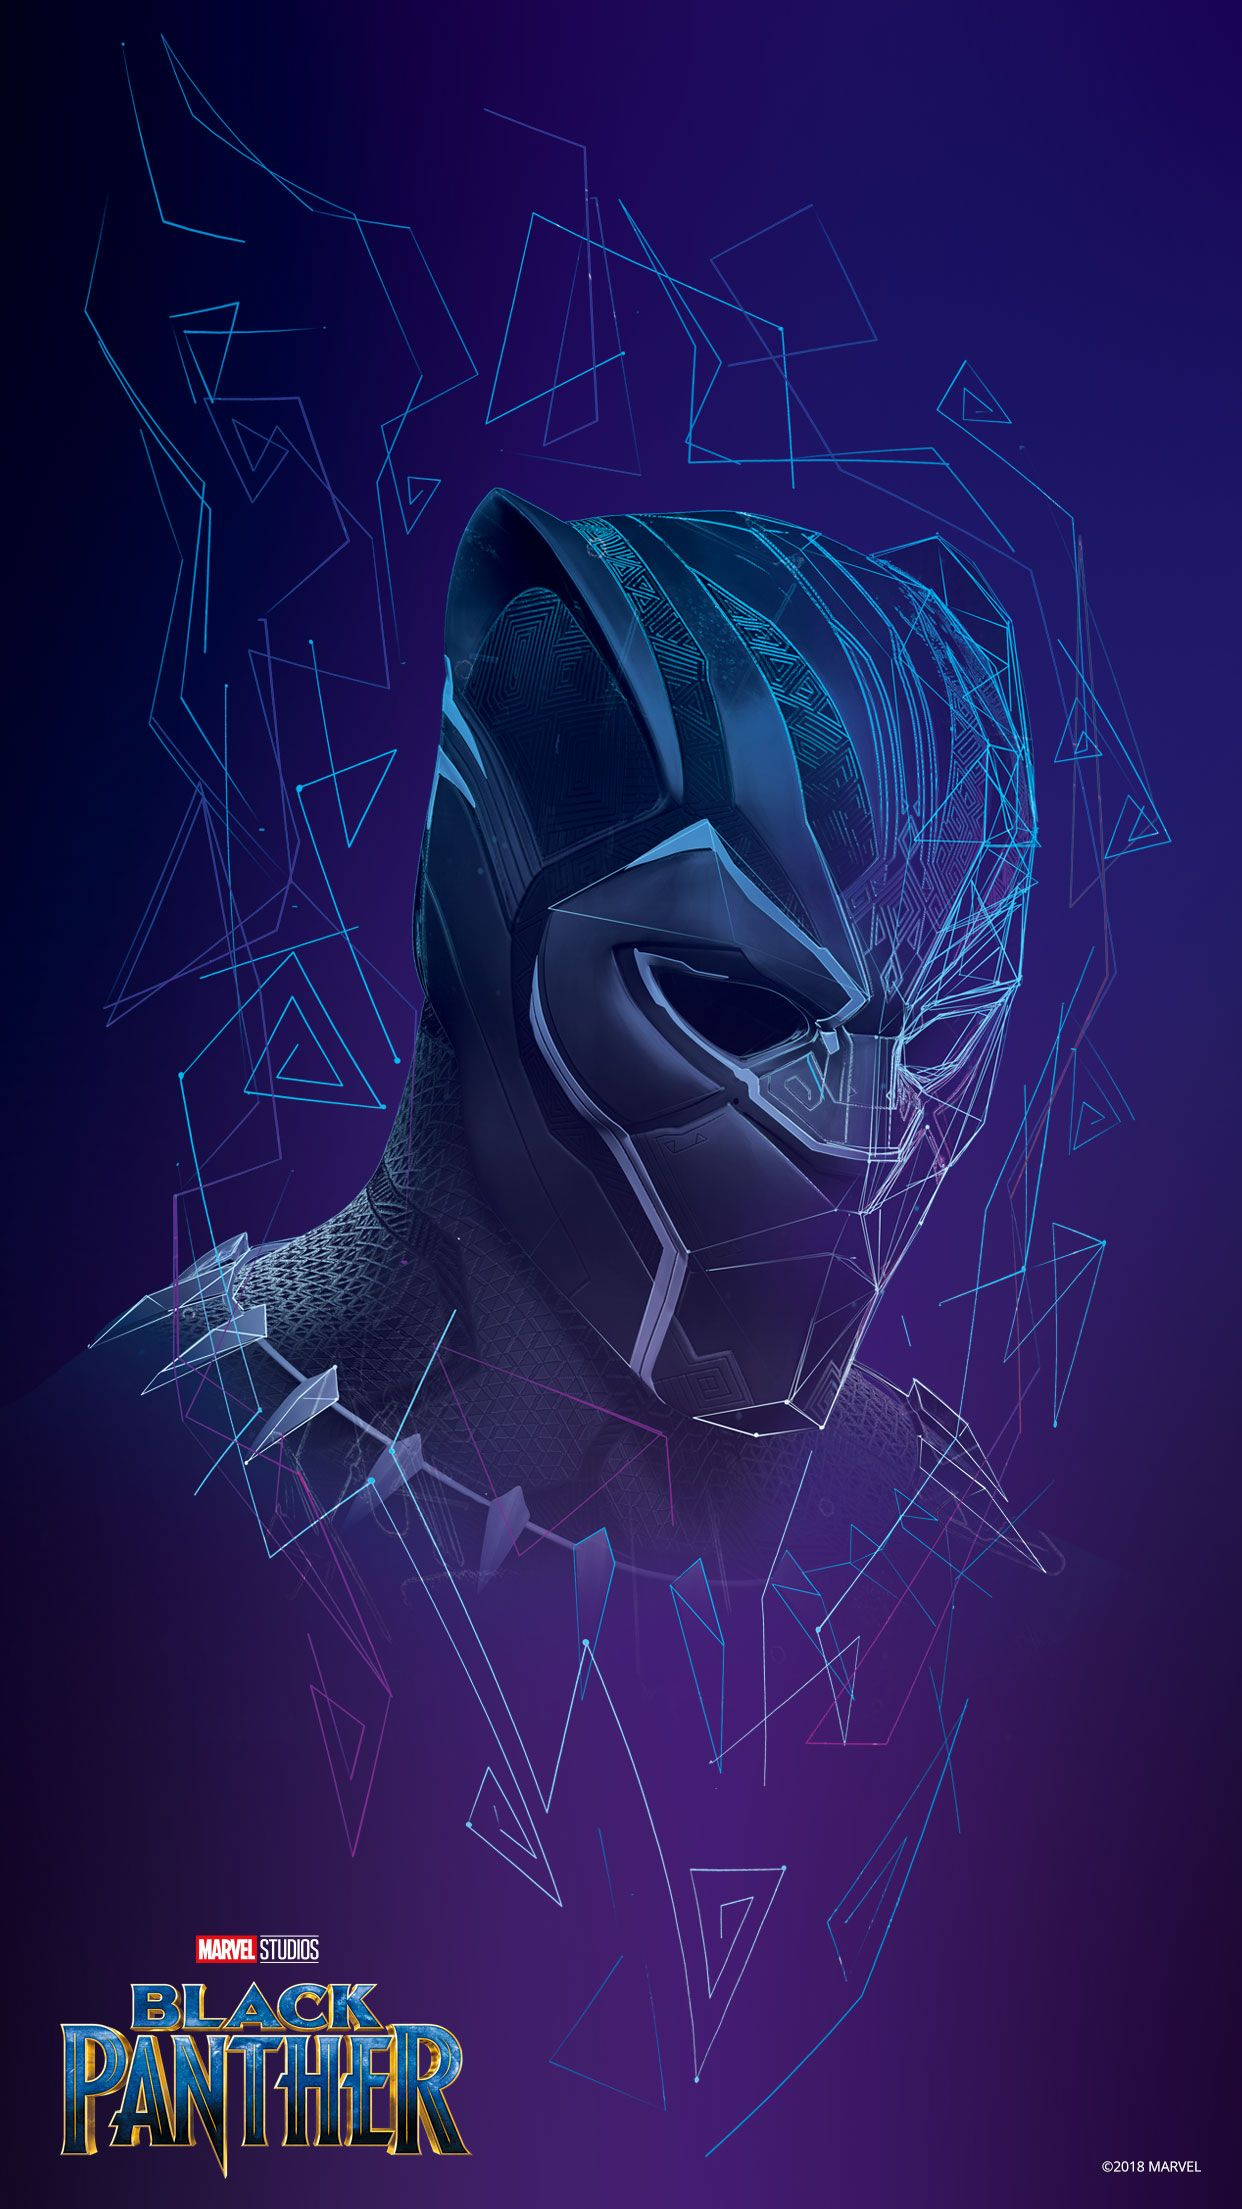 Black Panther Official Wallpaper From Disney ブラックパンサー